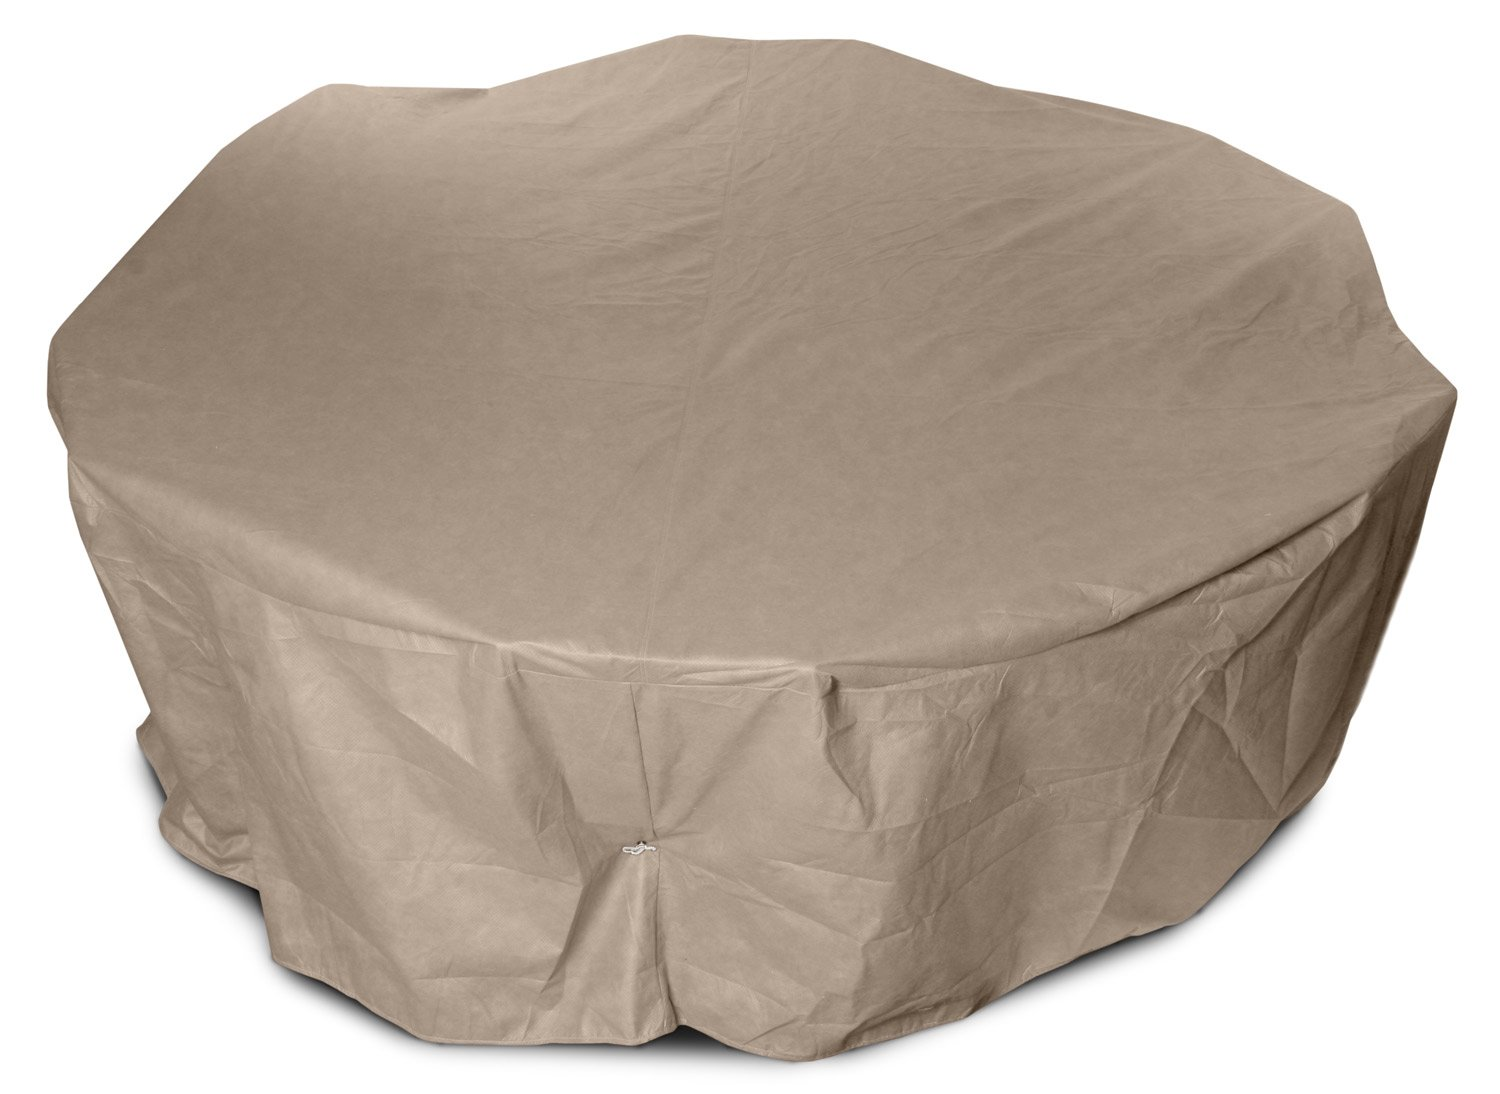 KoverRoos III 31262 80-Inch Round Table High Back Dining Set Cover, 114-Inch Diameter by 36-Inch Height, Taupe by KOVERROOS